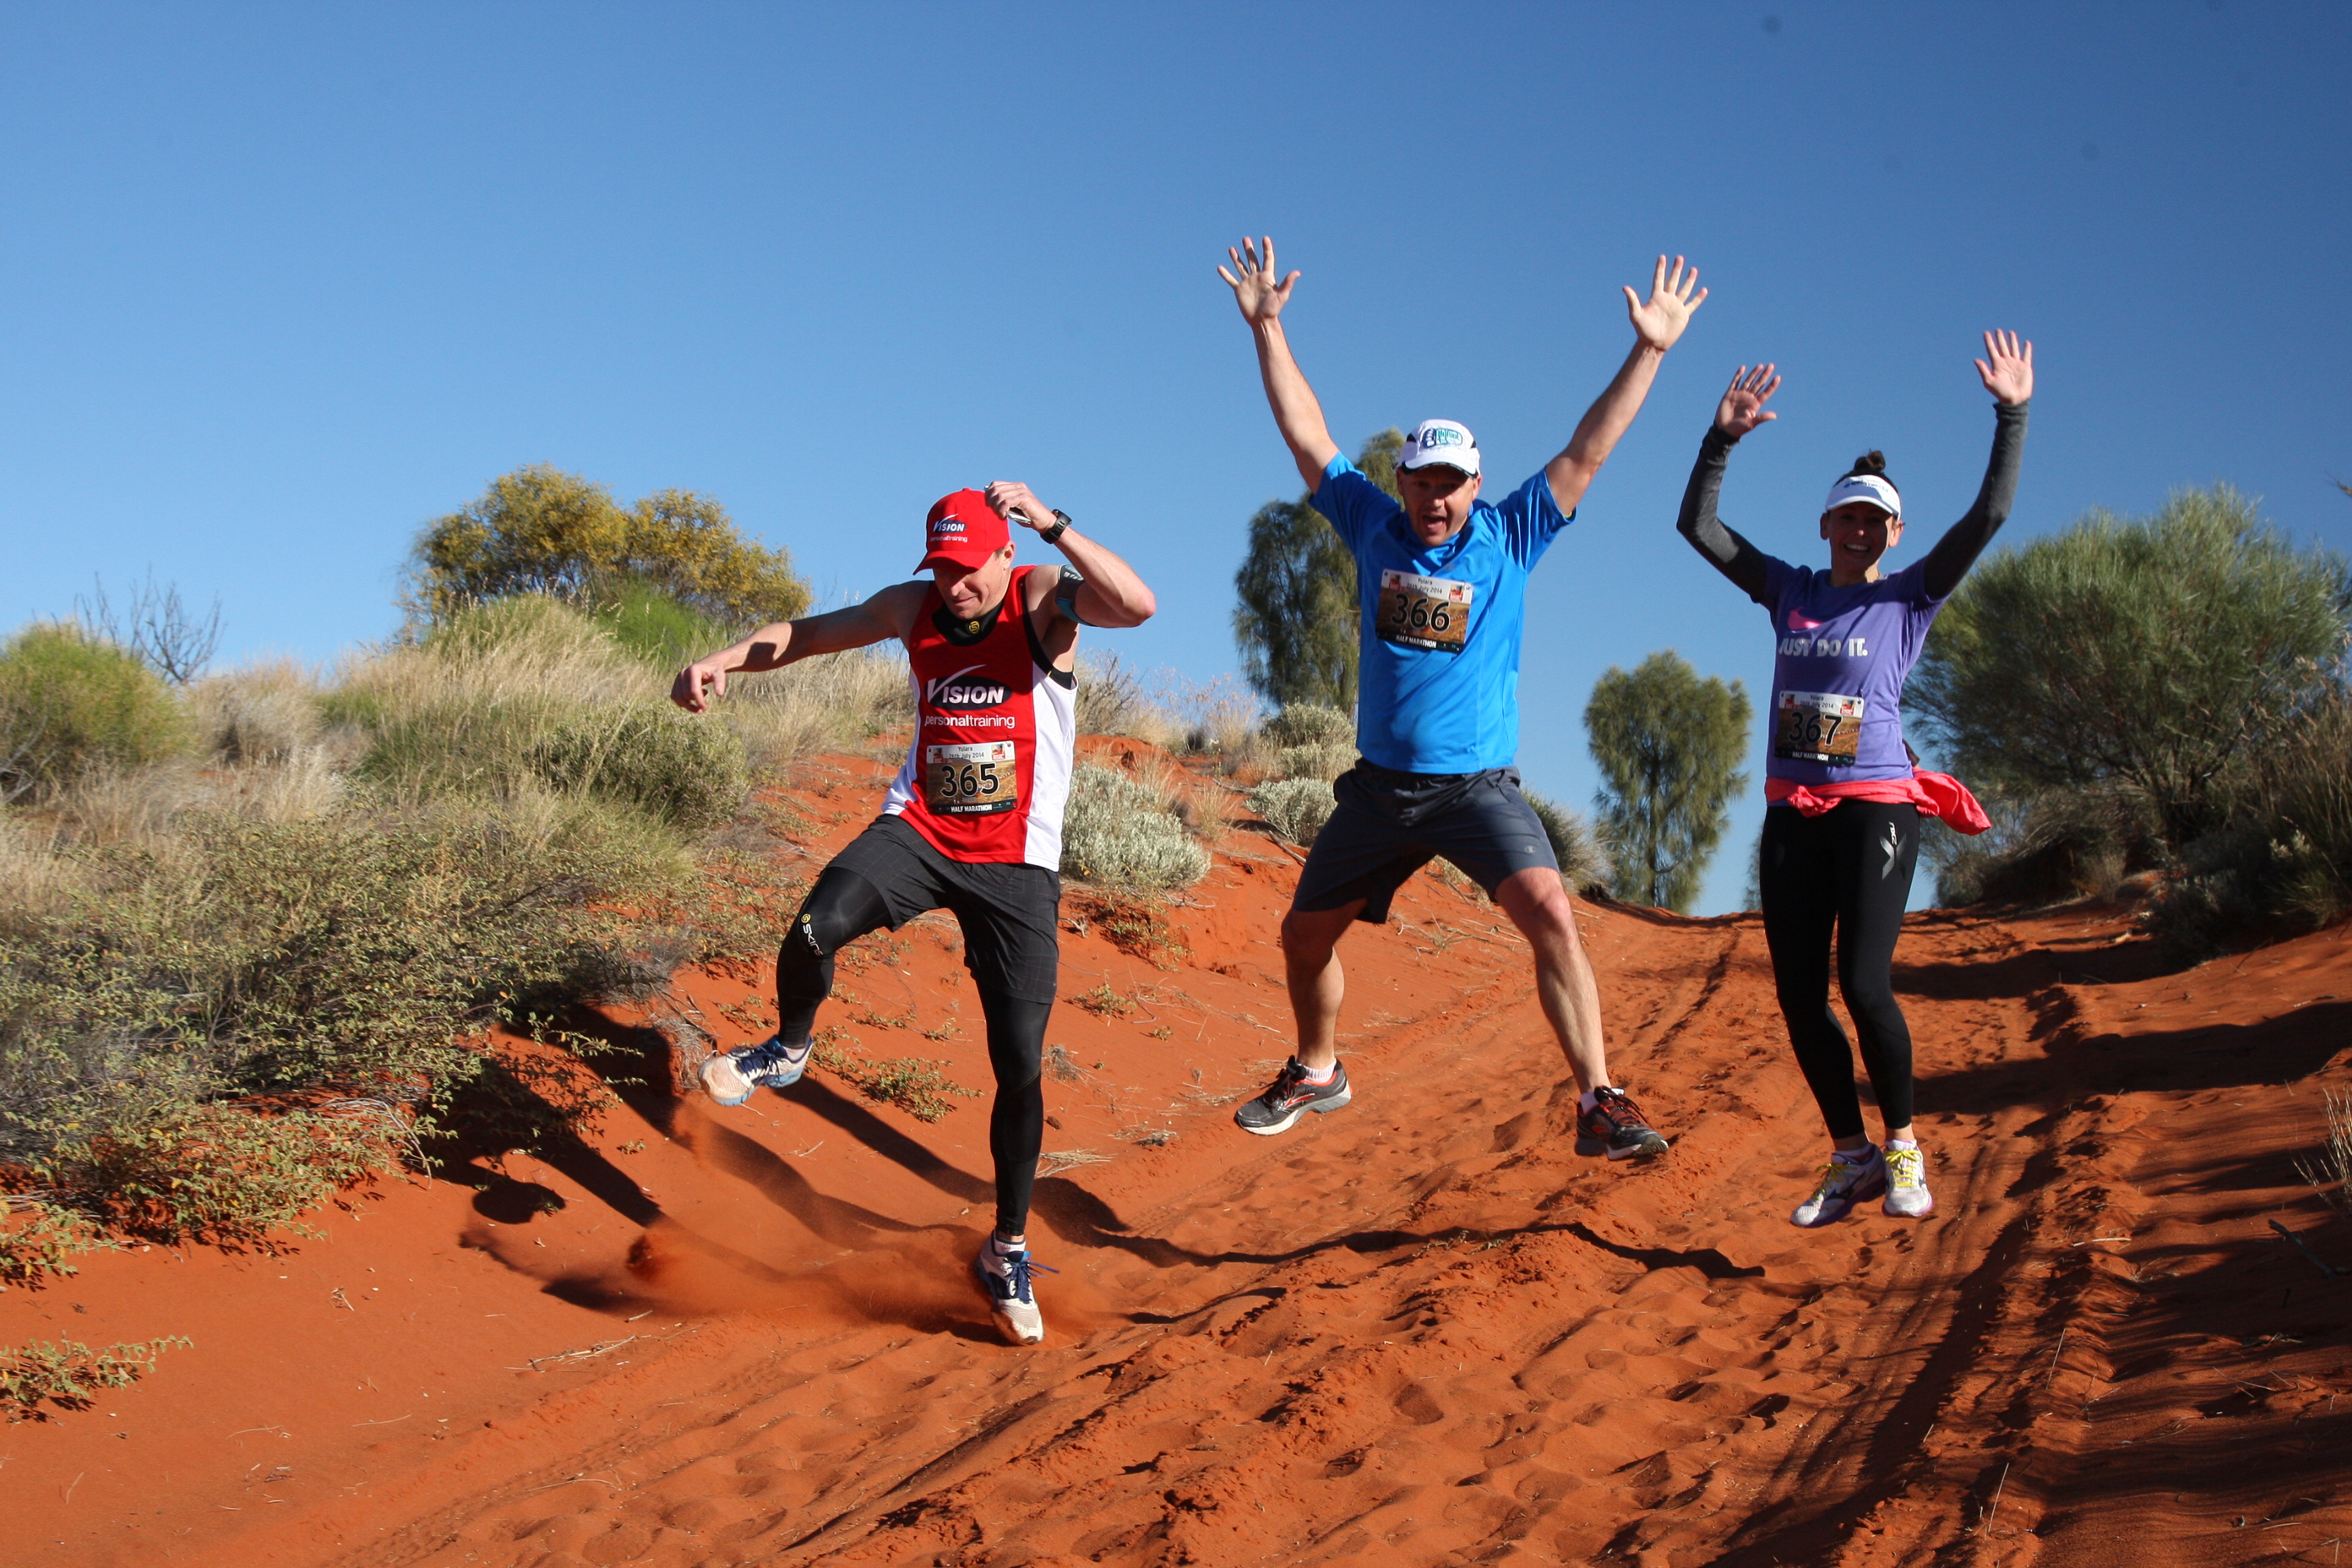 Runners jump excitedly in the Australian Outback Marathon